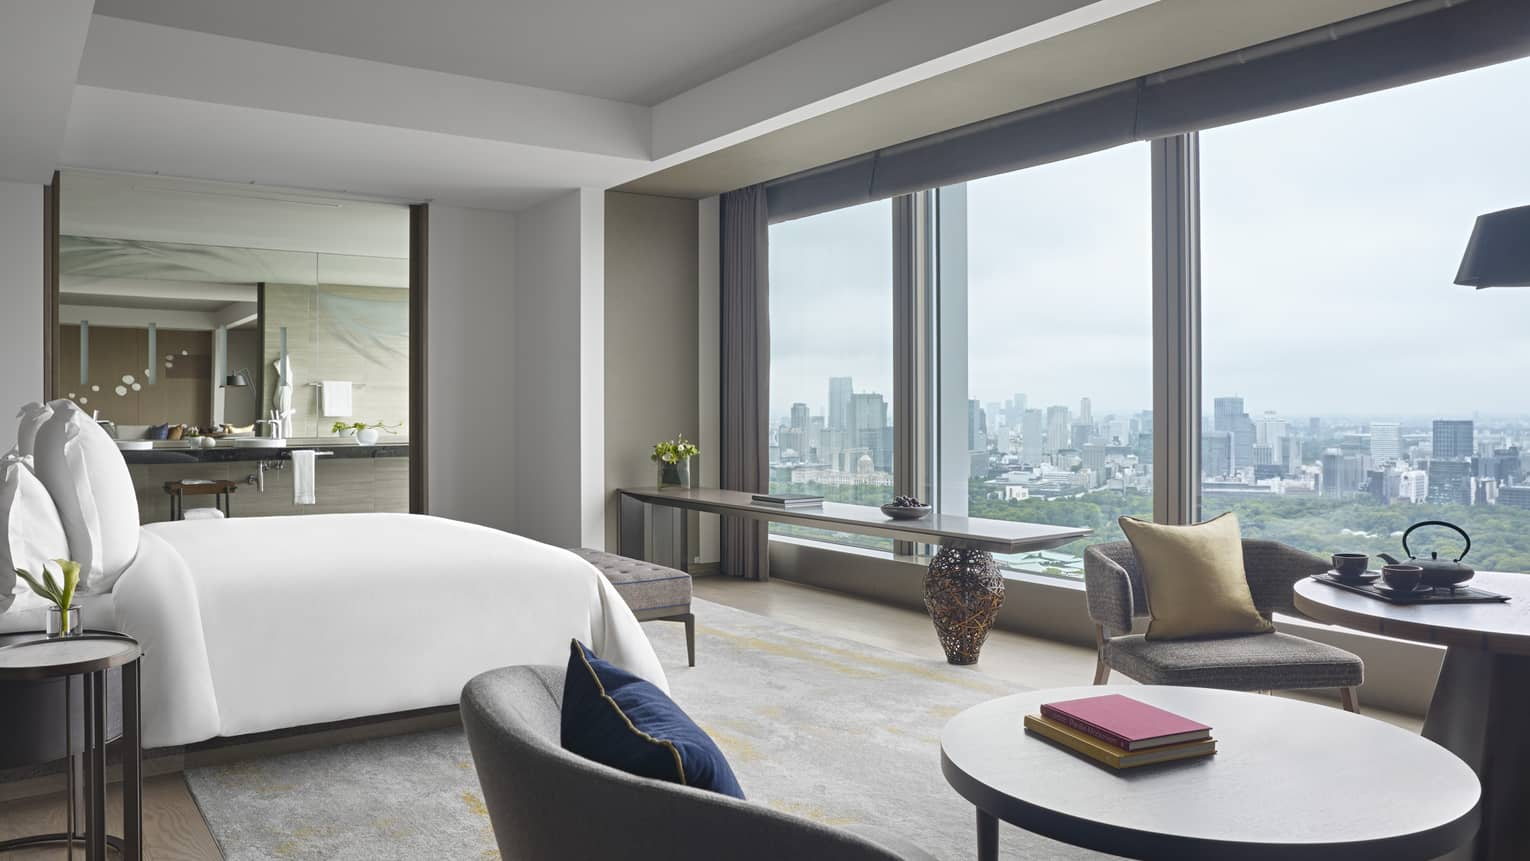 Hotel suite with a king bed, round table and chairs and a wall of windows overlooking Tokyo